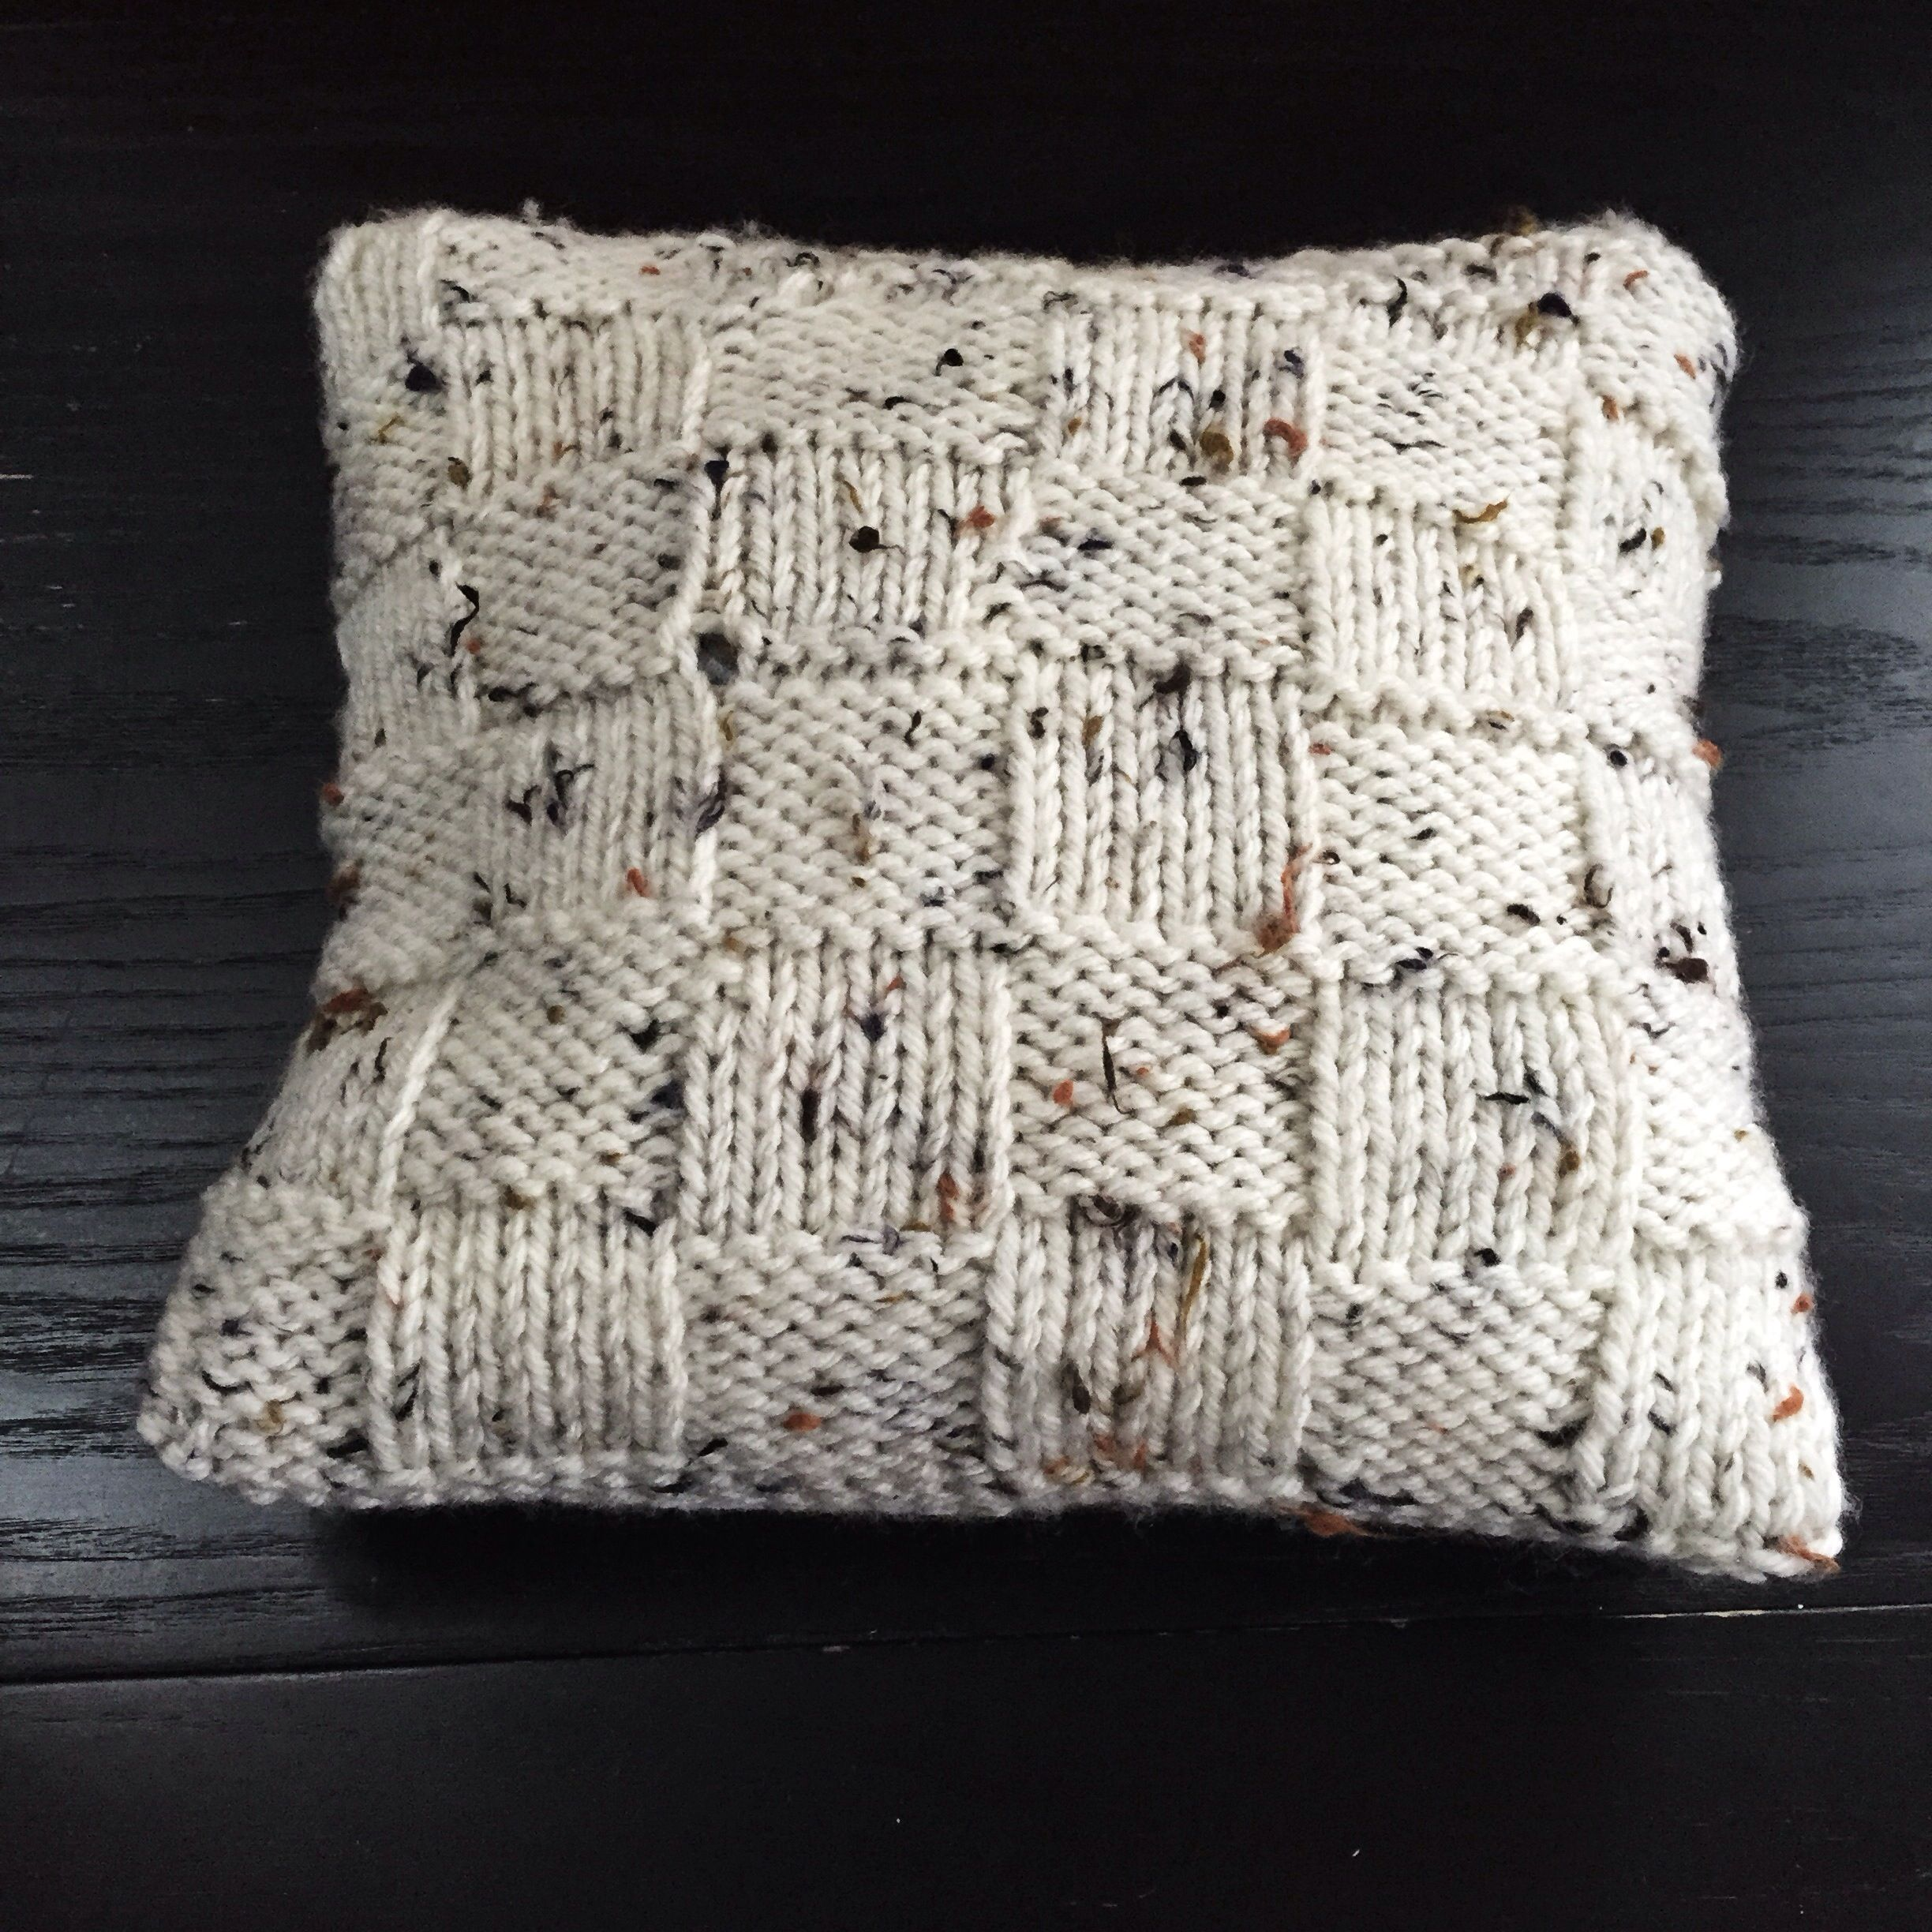 A new challenge: the results | Pinterest | Crochet, Pillows and Knit ...